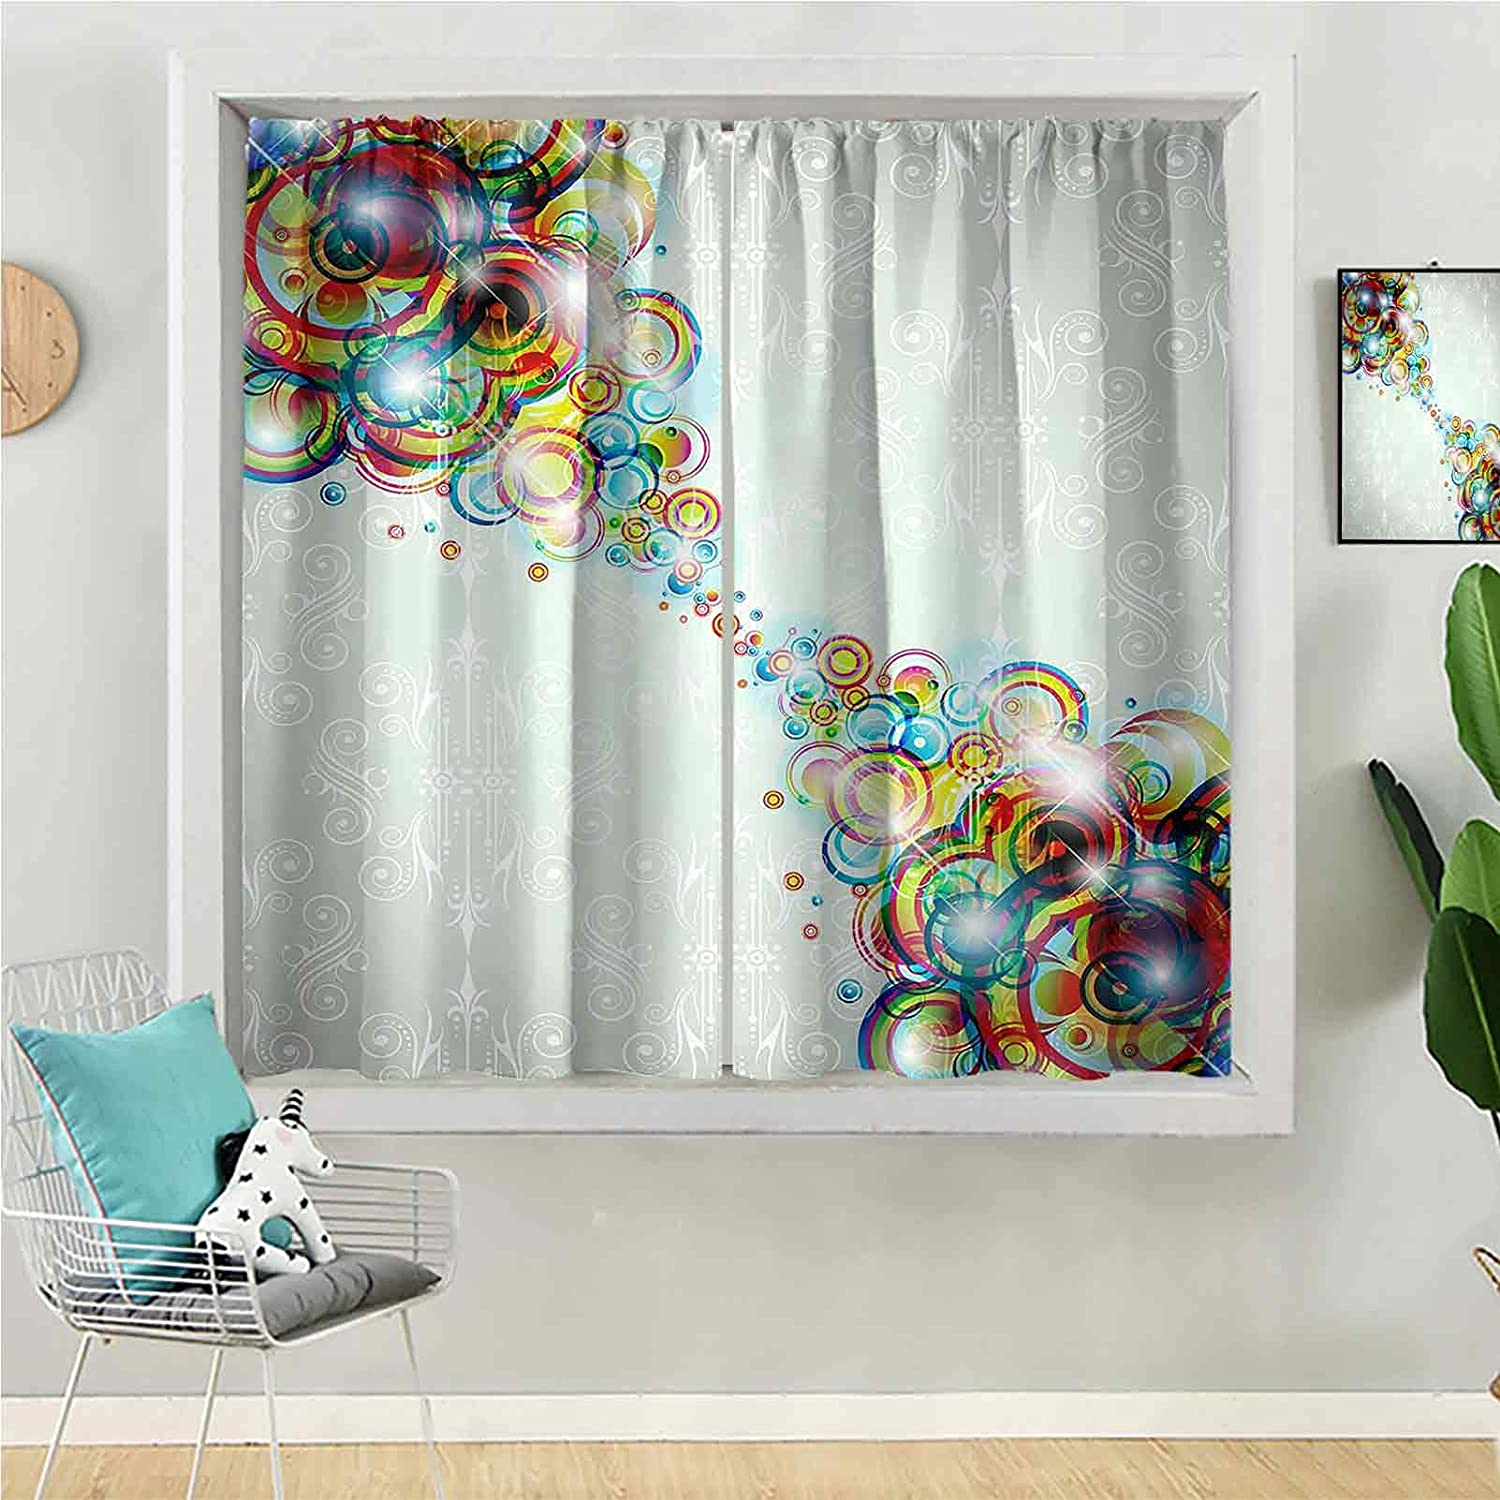 Max Dealing full price reduction 80% OFF Blackout Curtain 84 inches Long Panel Window Be for Kids